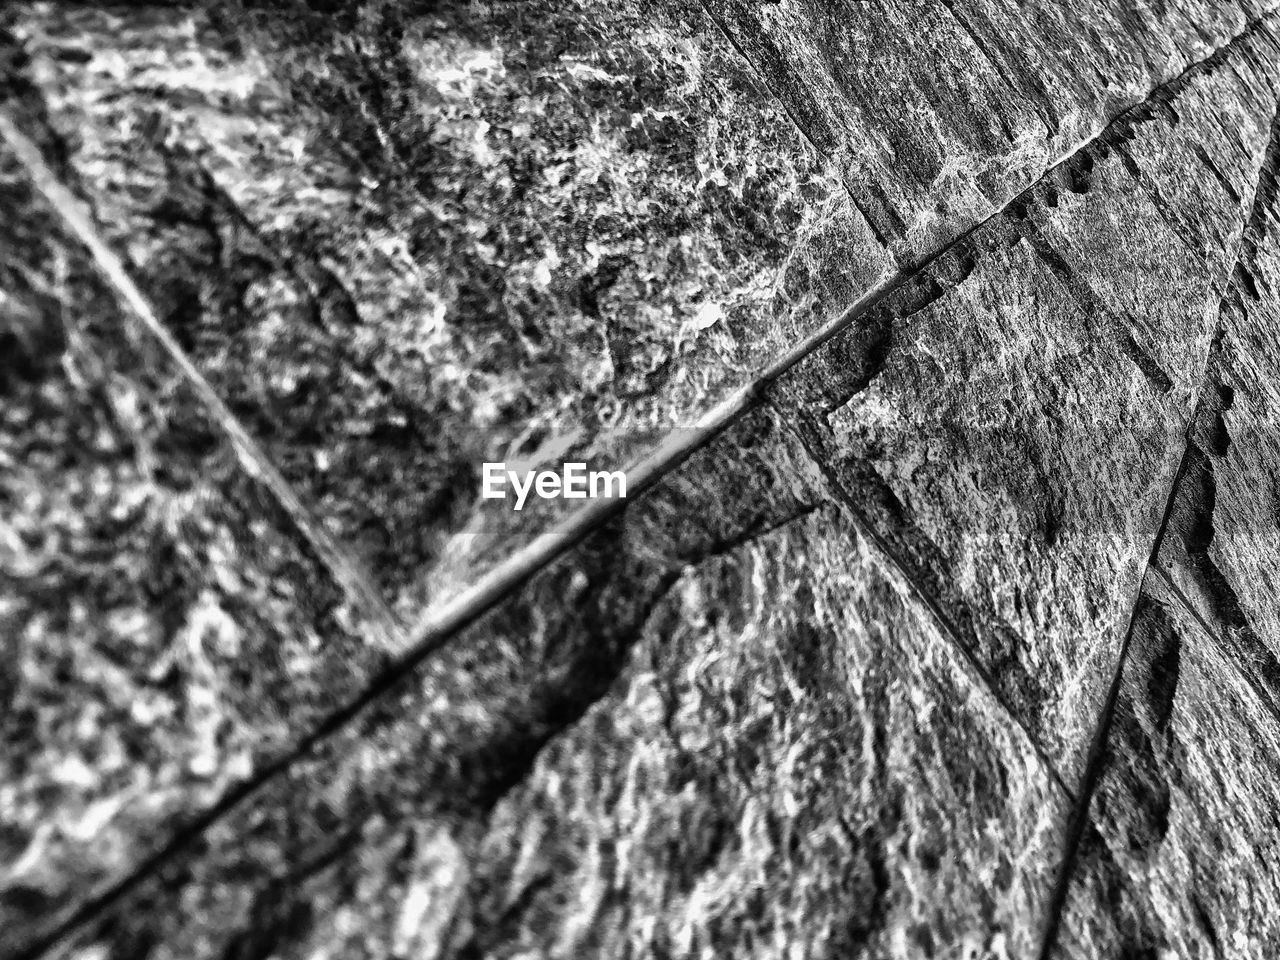 textured, close-up, no people, full frame, day, outdoors, backgrounds, nature, line